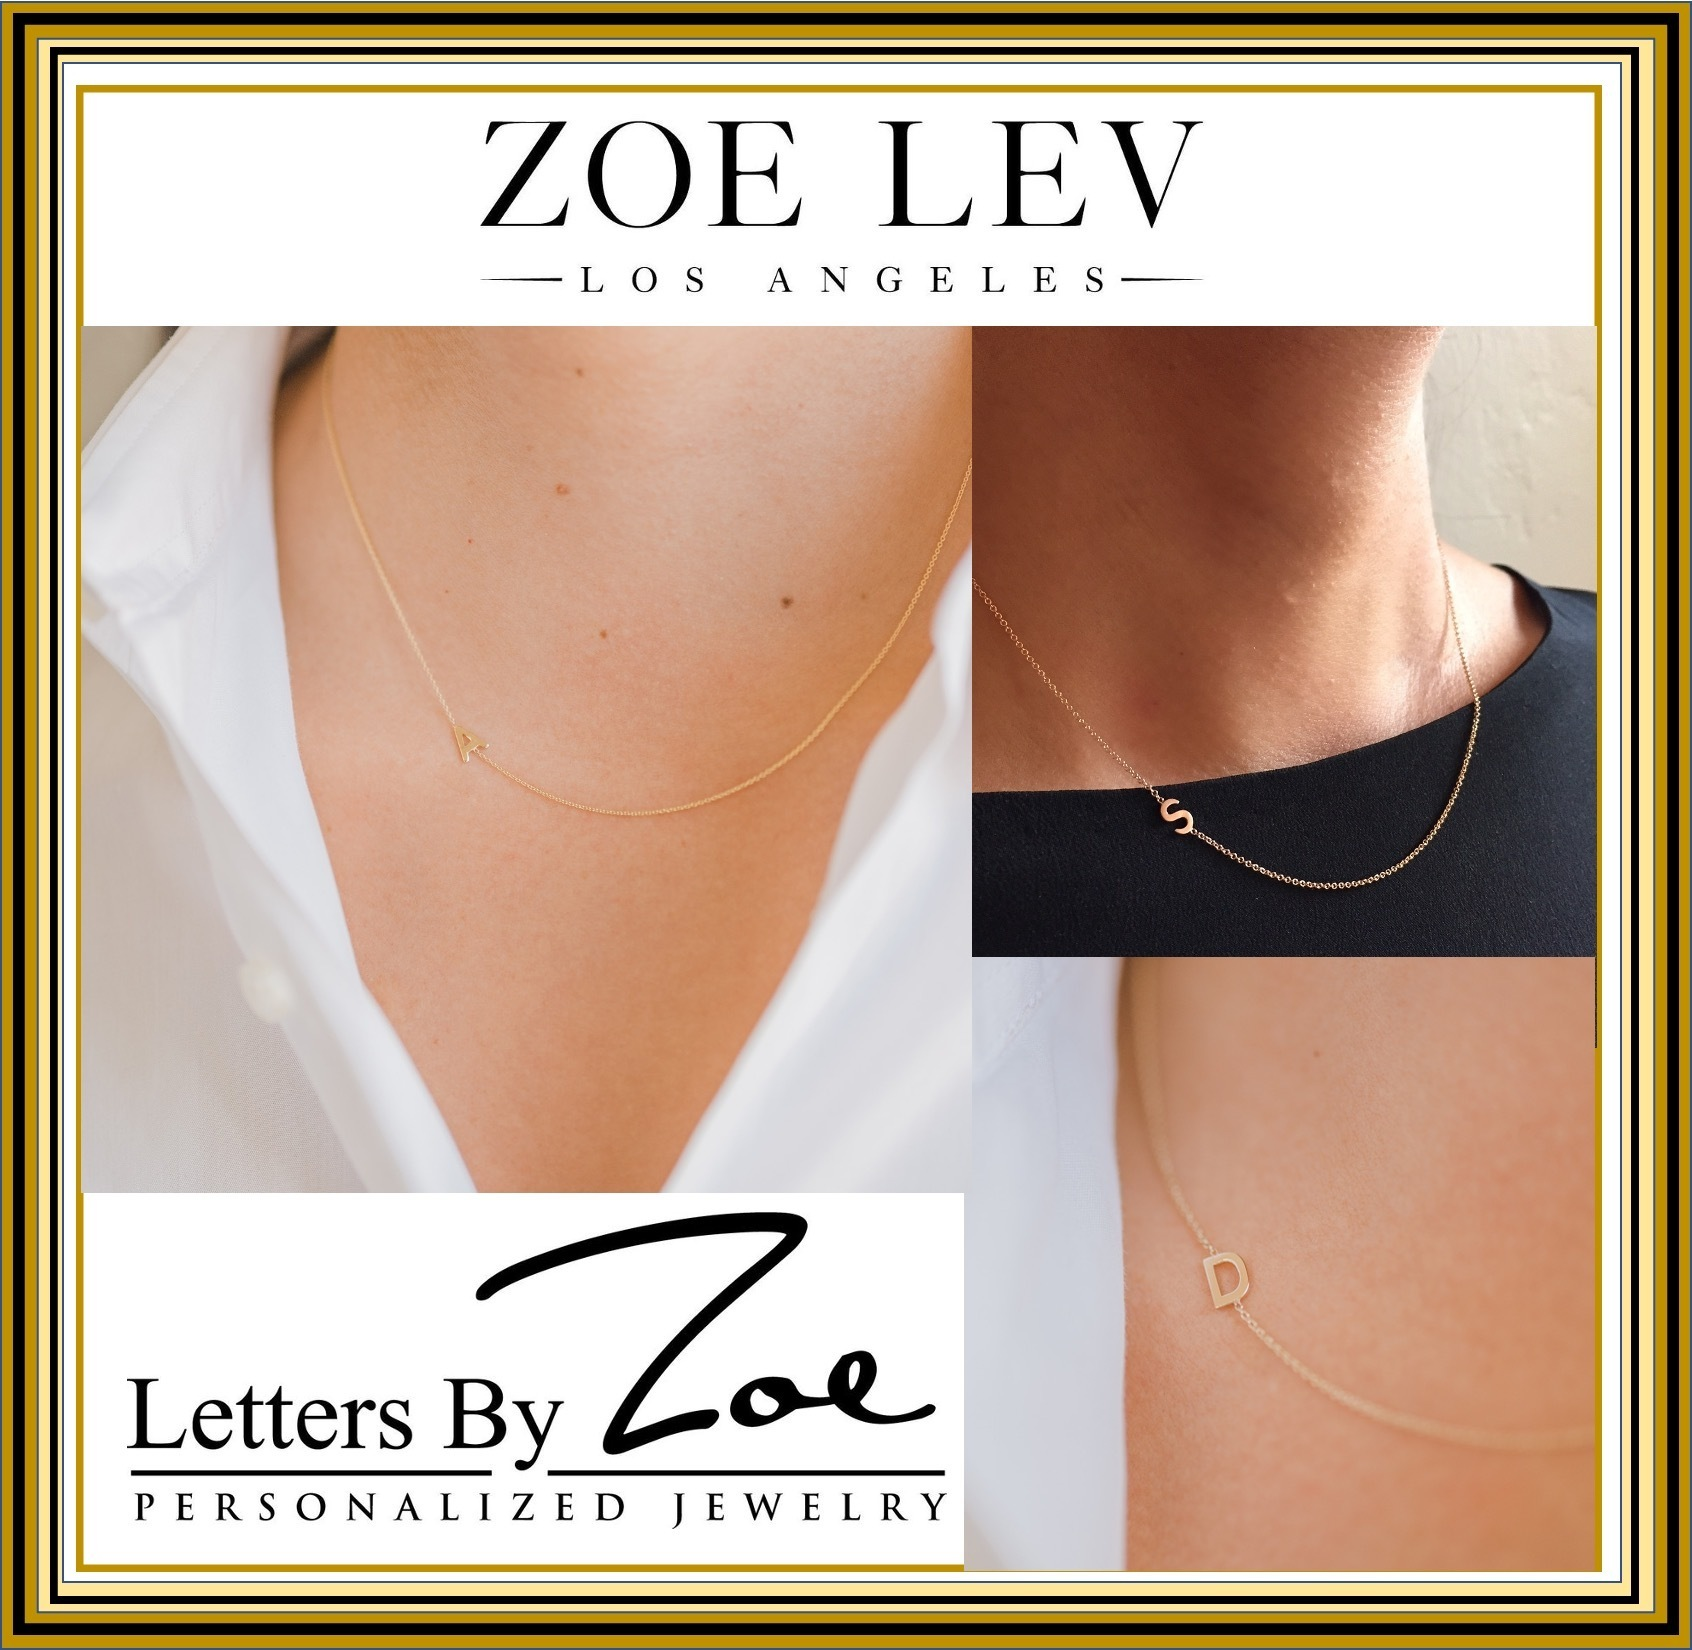 14k Gold Asymmetrical Initial Necklace セレブ愛用 ZOE LEV (ZOE LEV/ネックレス・ペンダント) 67637053